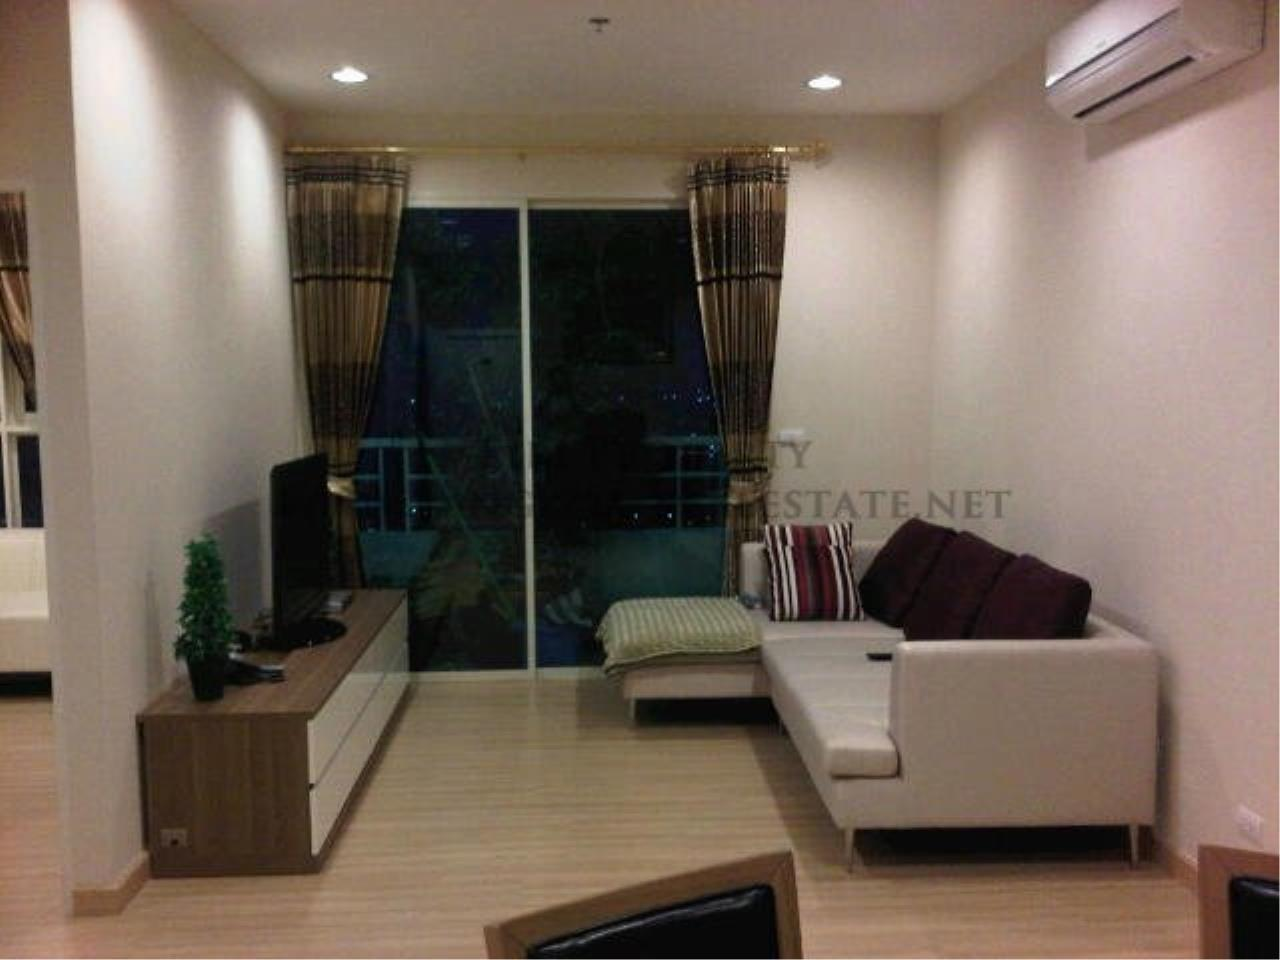 Piri Property Agency's 2 Bedroom Condo in the Lighthouse Condominium for sale - 27th Floor 1